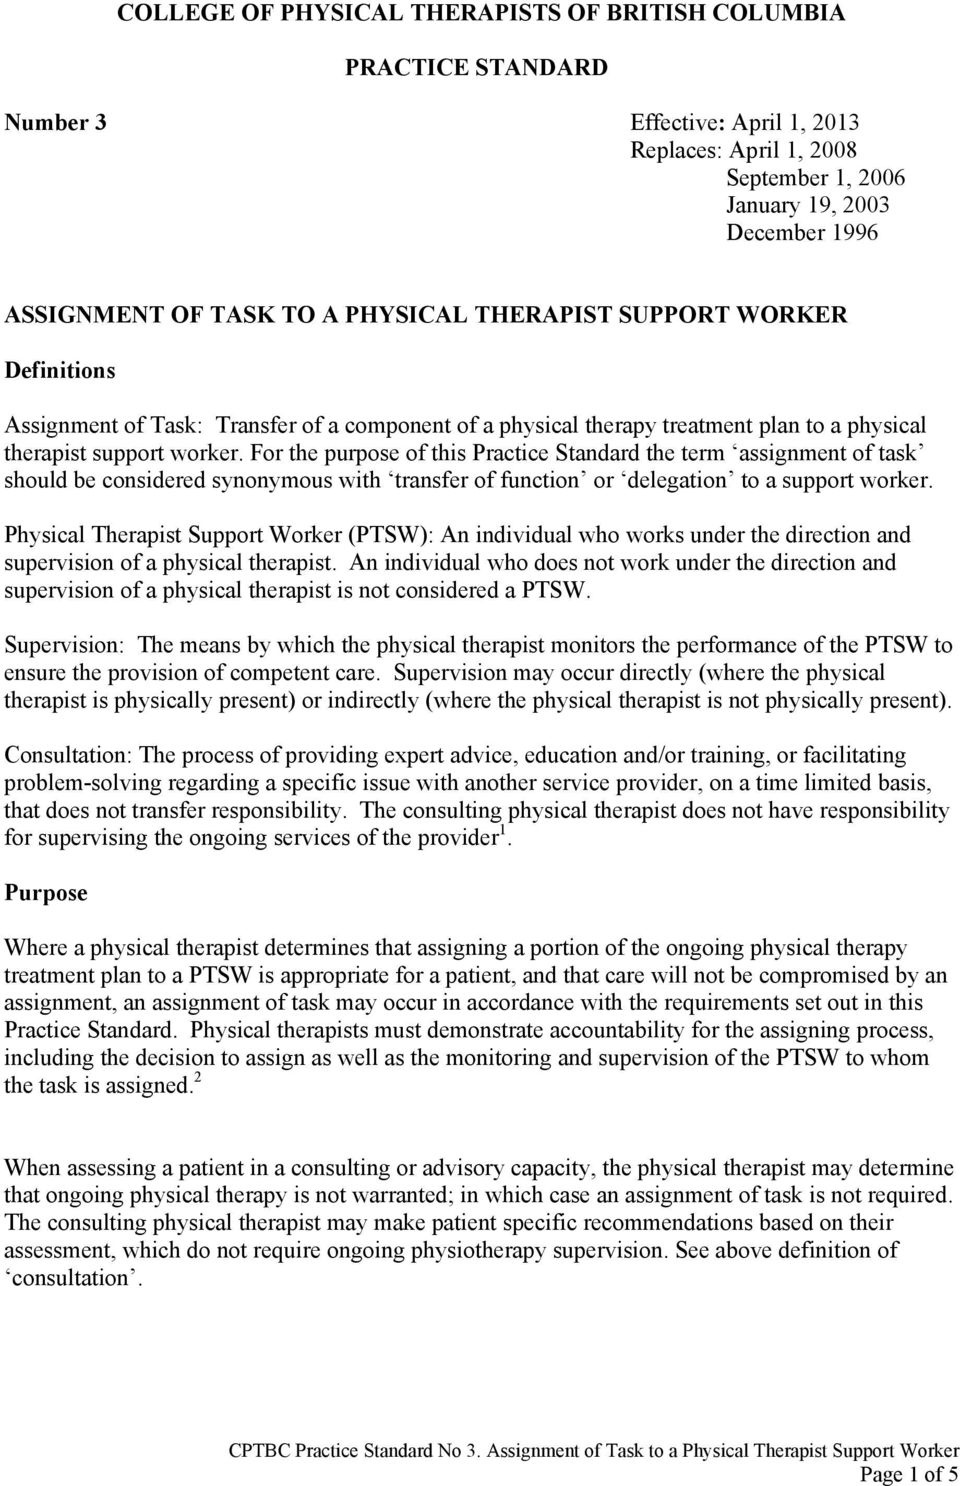 For the purpose of this Practice Standard the term assignment of task should be considered synonymous with transfer of function or delegation to a support worker.